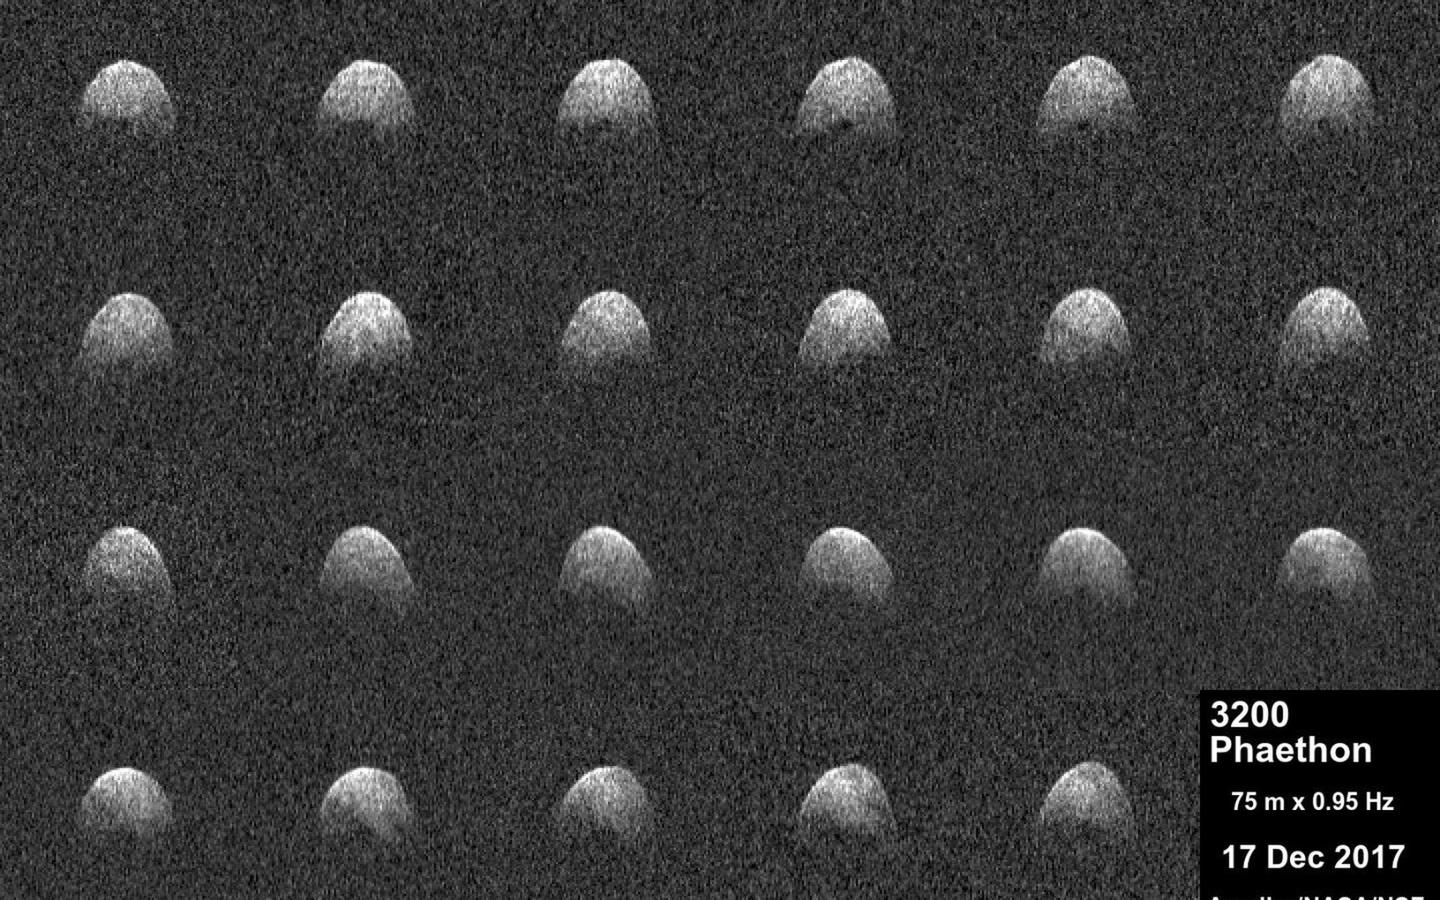 Radar images of near-Earth asteroid 3200 Phaethon generated by astronomers at the Arecibo Observatory on December 17, 2017